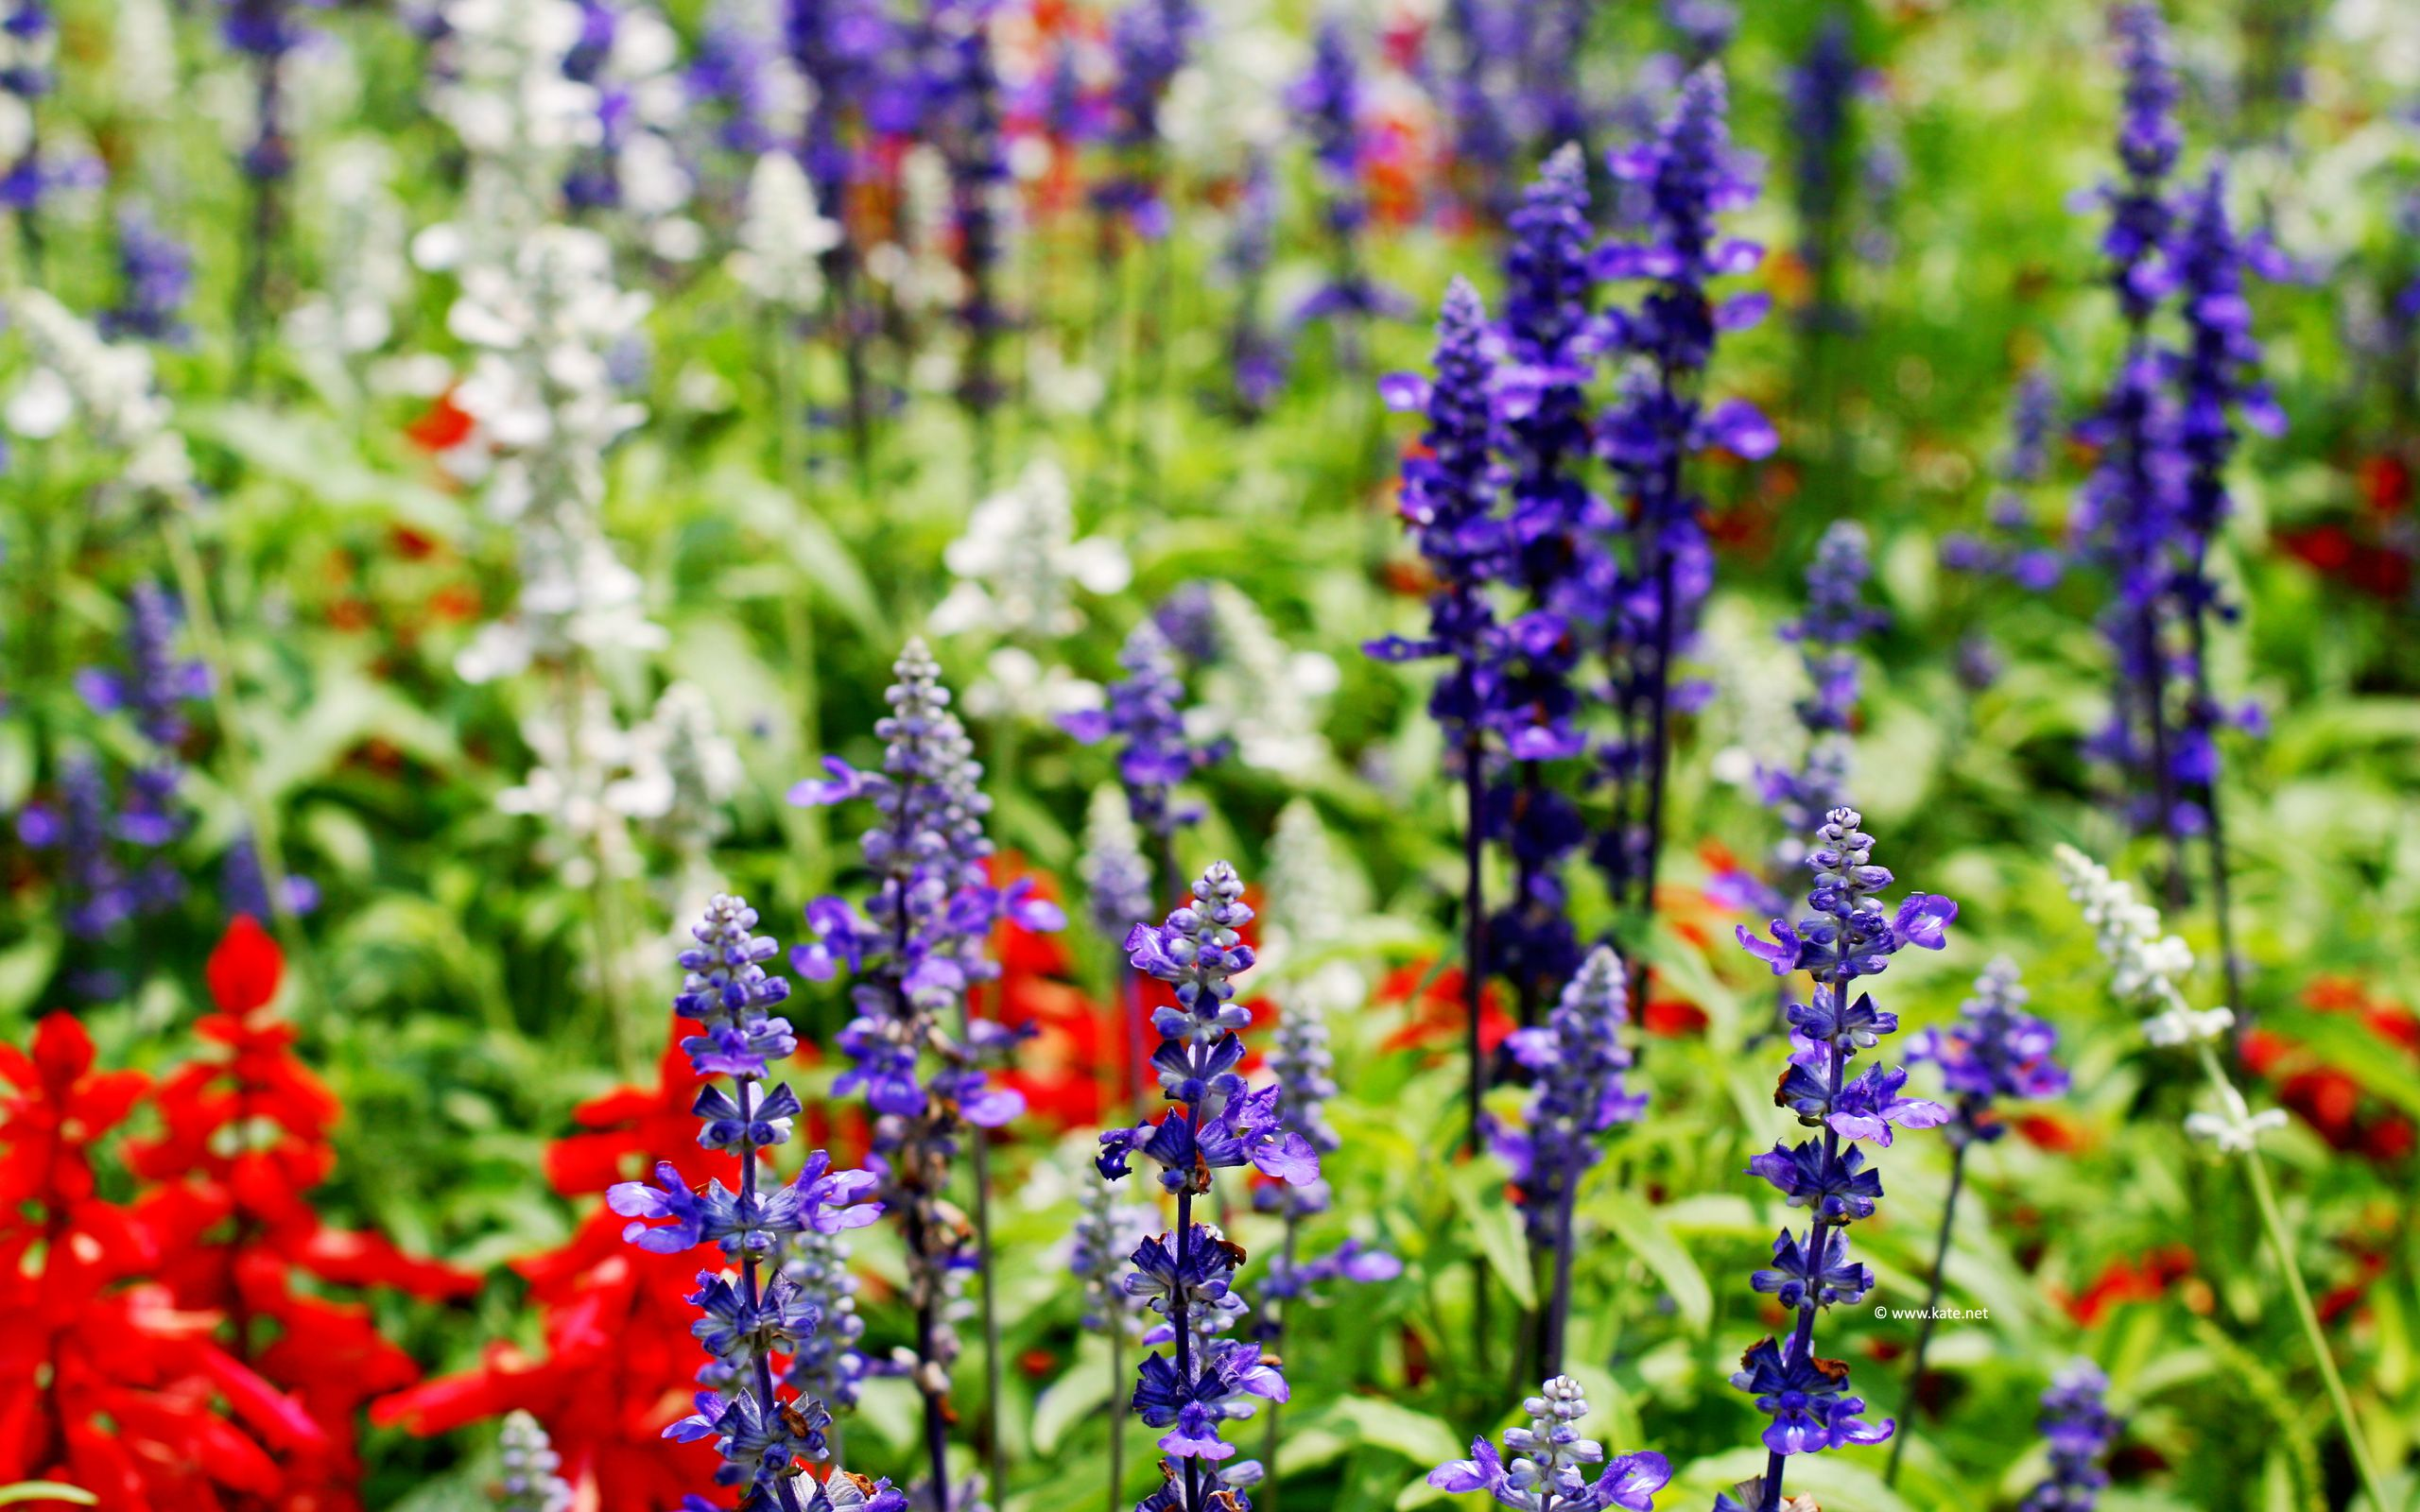 Red White And Blue Flowers Wallpapers Top Free Red White And Blue Flowers Backgrounds Wallpaperaccess